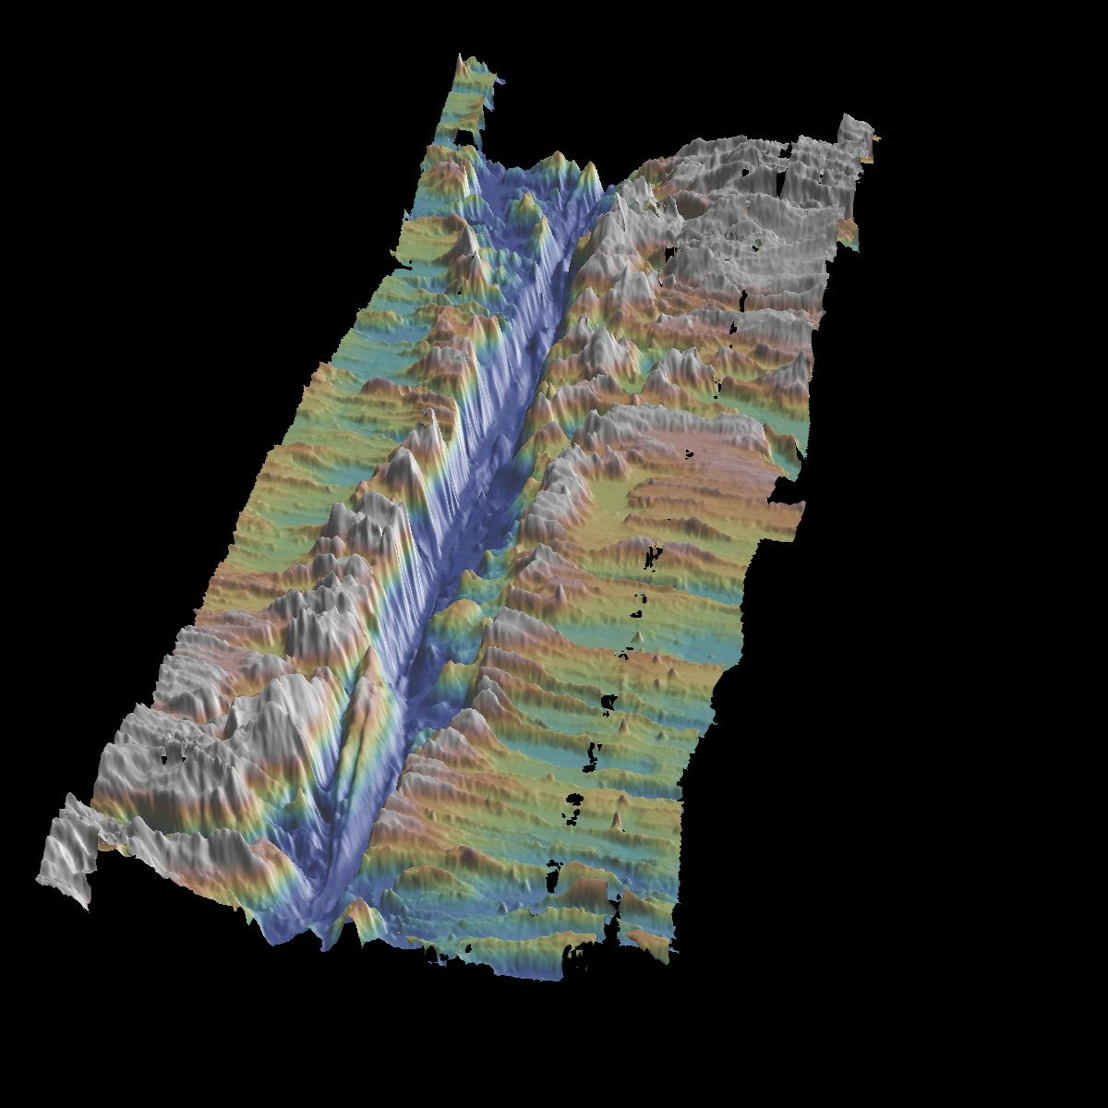 A 3D image of the transform fault on the Mid-Atlantic Ridge from the Passive Imaging of the Lithosphere and Asthenosphere Boundary (PILAB) experiment. Credit: Nick Harmon and Catherine Rychert